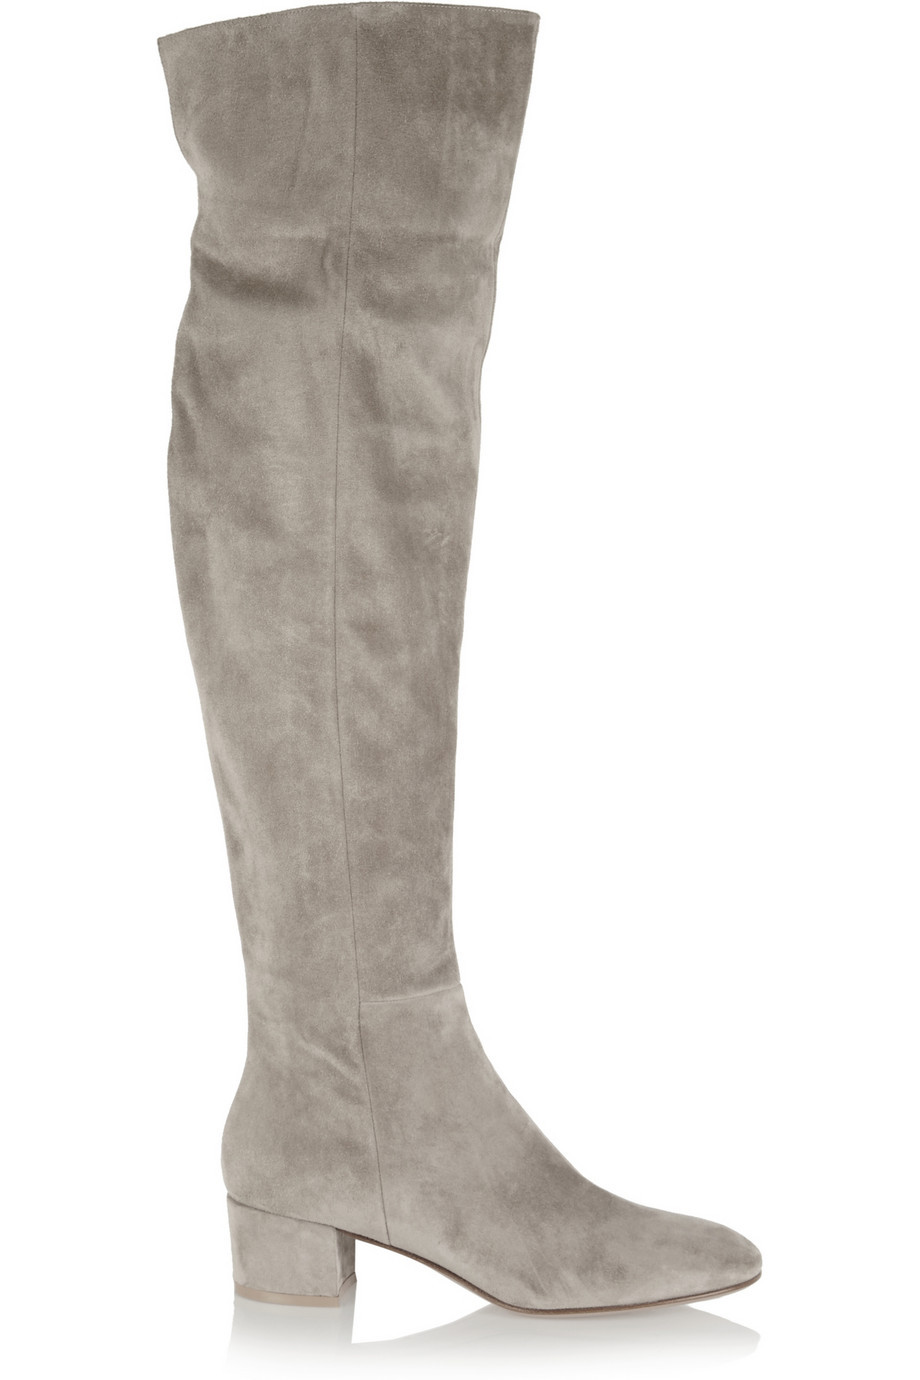 Grey Suede Womens Boots